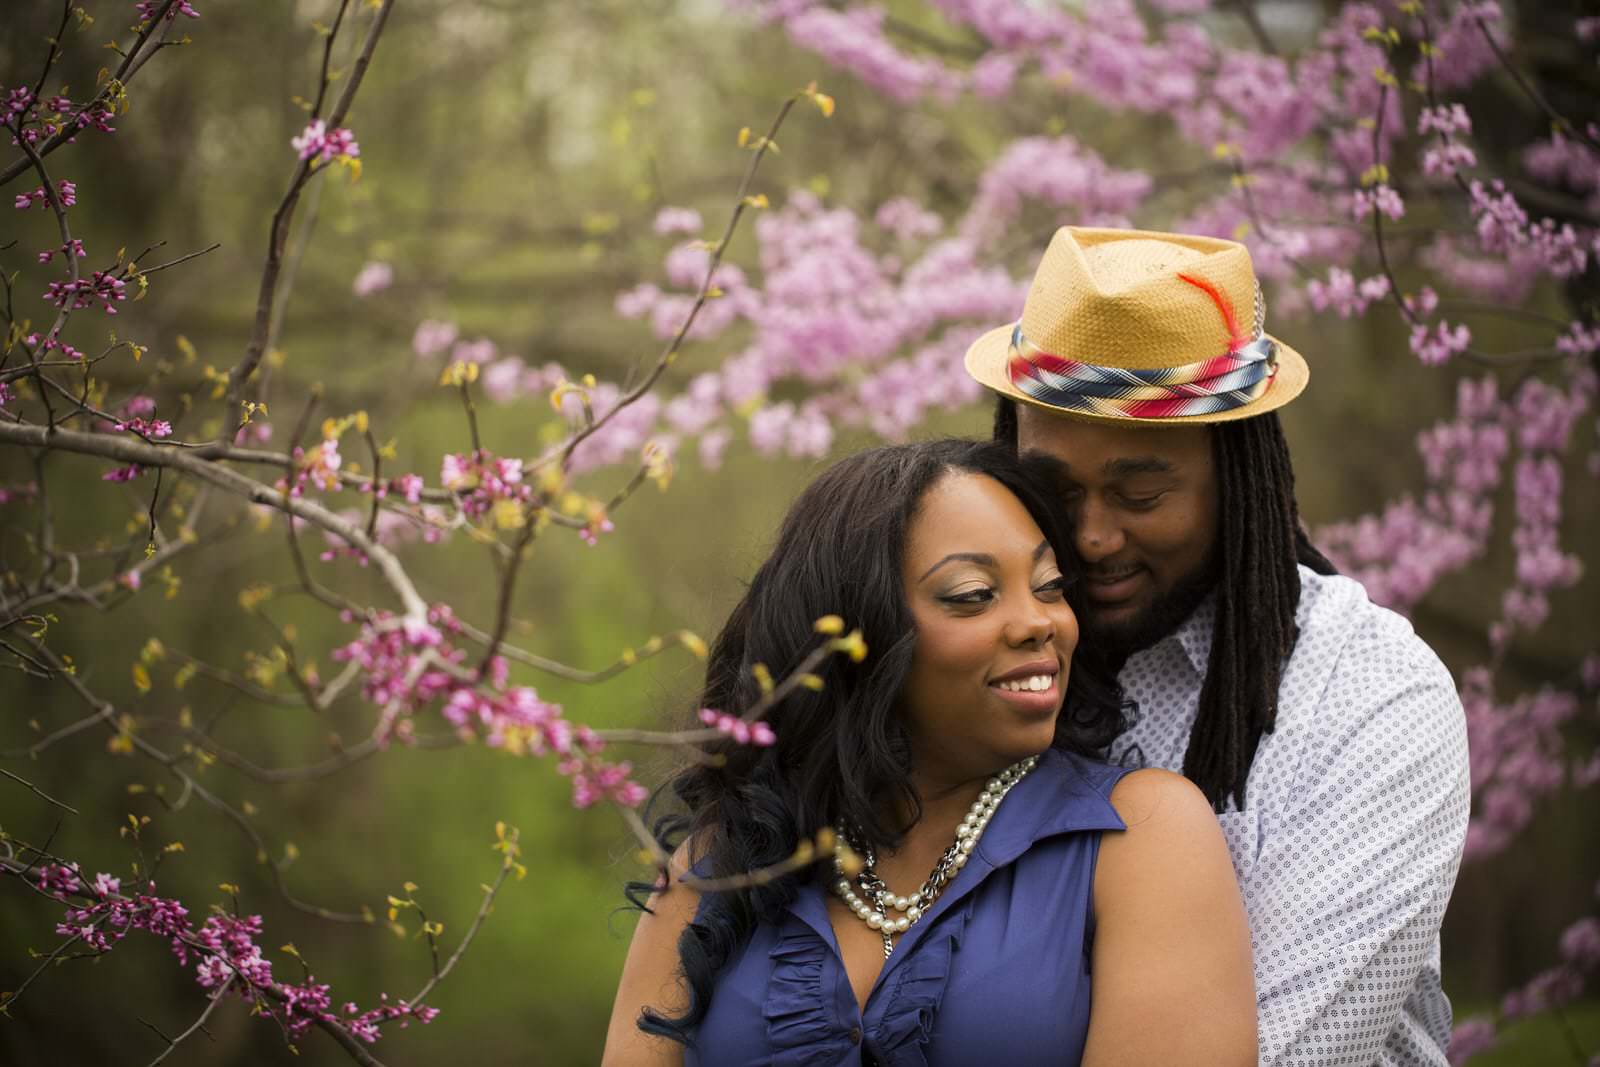 Candace-Robert-Audobon-Center-engagement-photography-by-Amy-Ann-00010